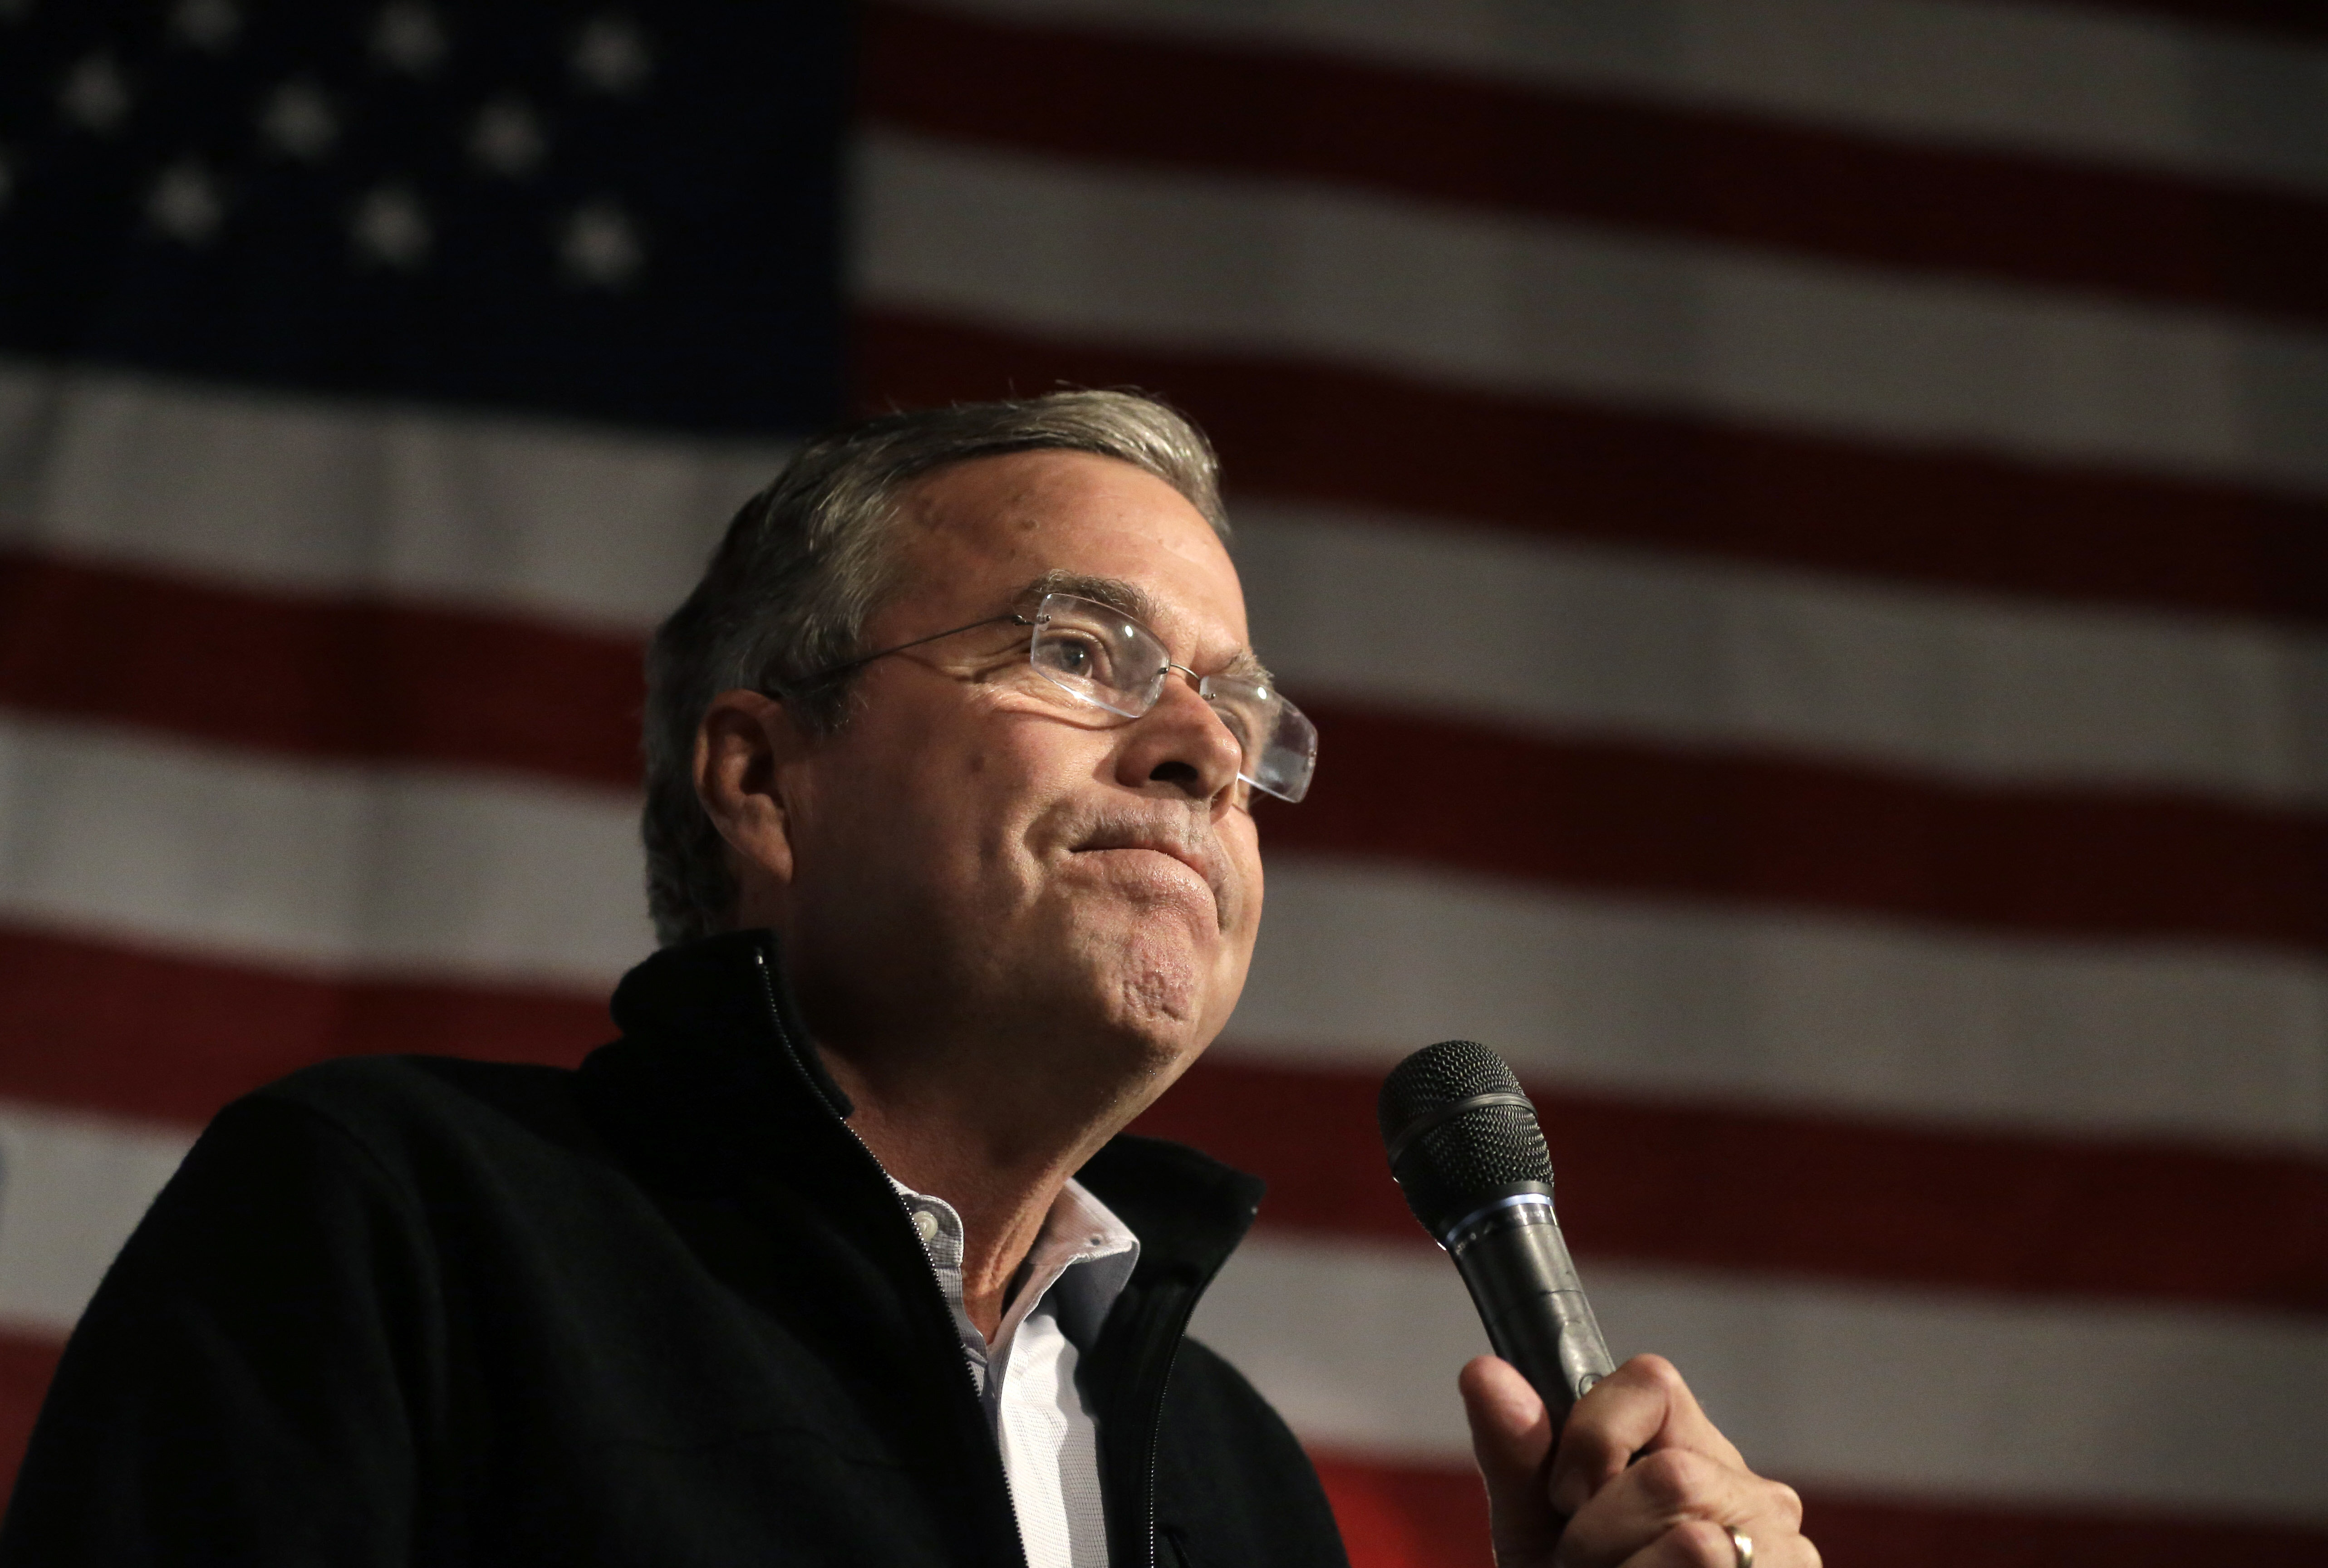 Former Florida Gov. Jeb Bush (R) struggled to come up with a straight answer about whether the Iraq War was a mistake.